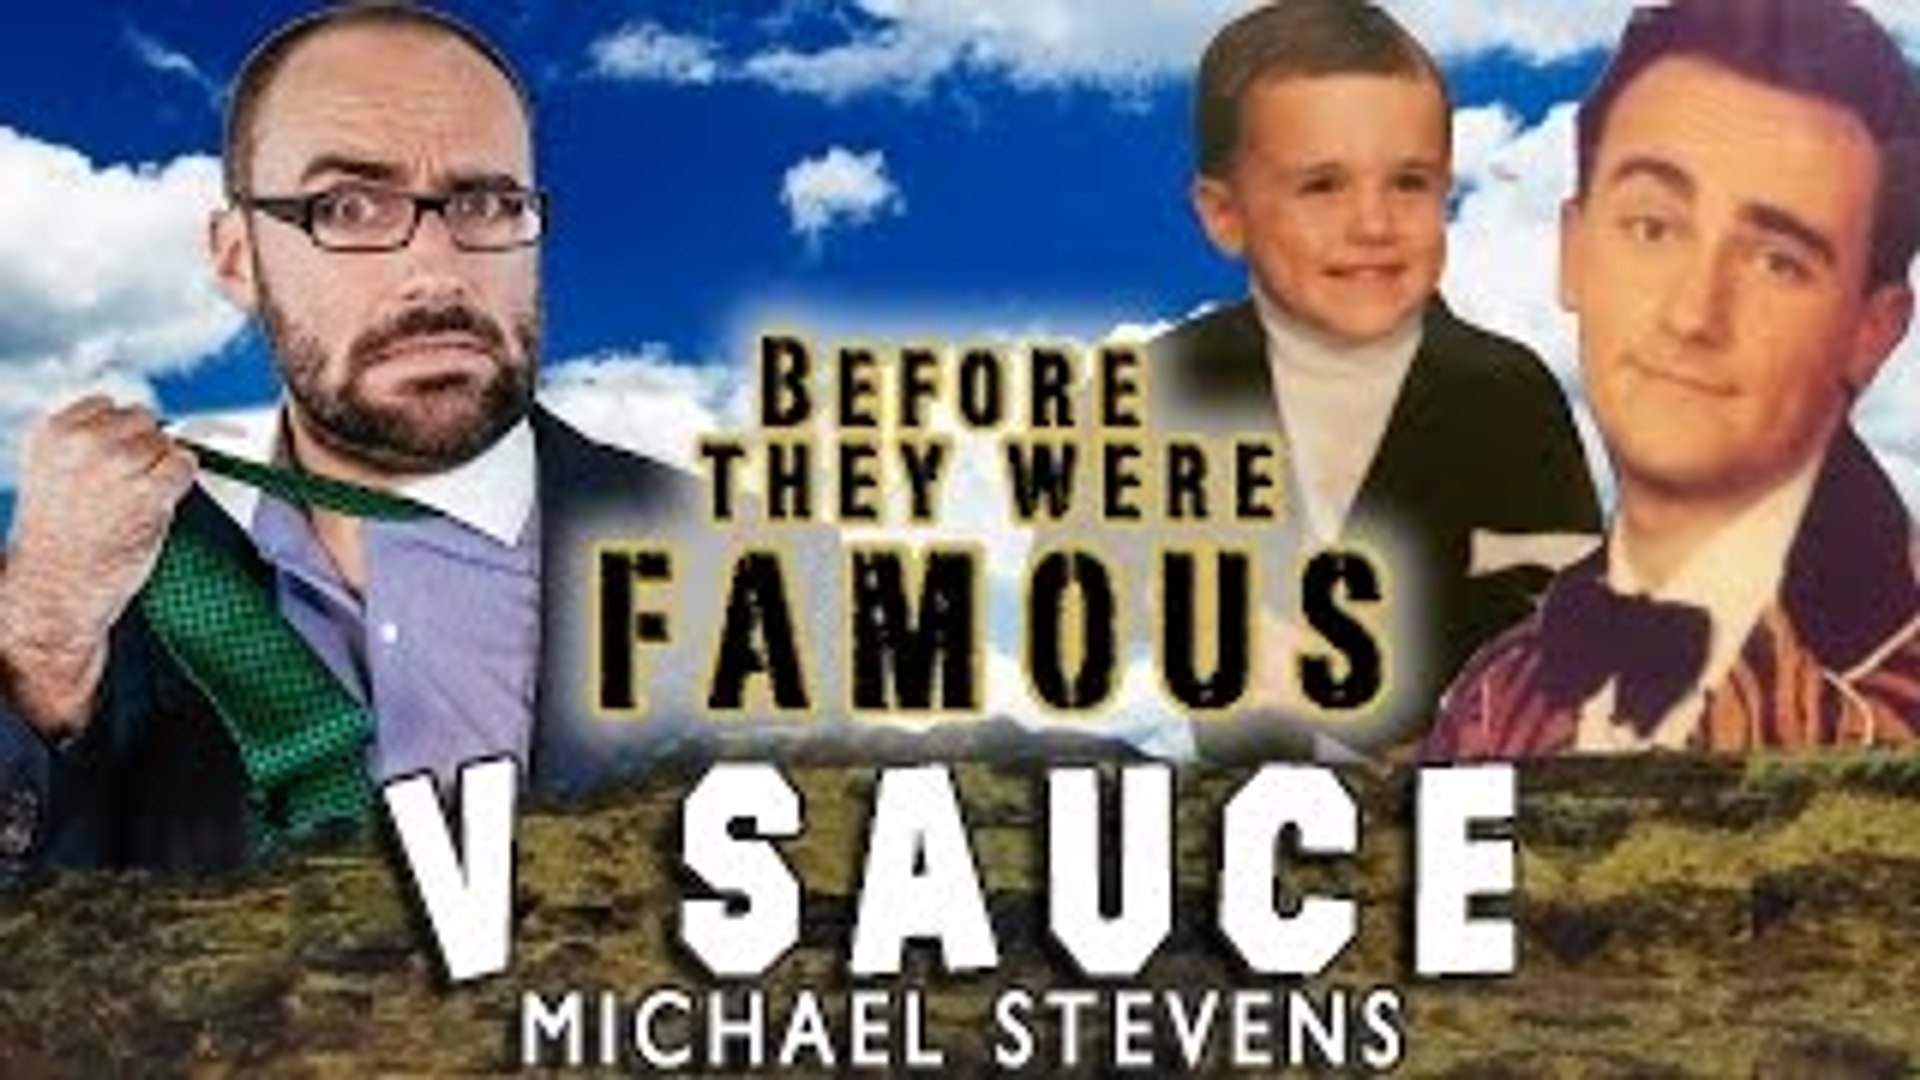 V SAUCE - Before They Were Famous - Michael Stevens